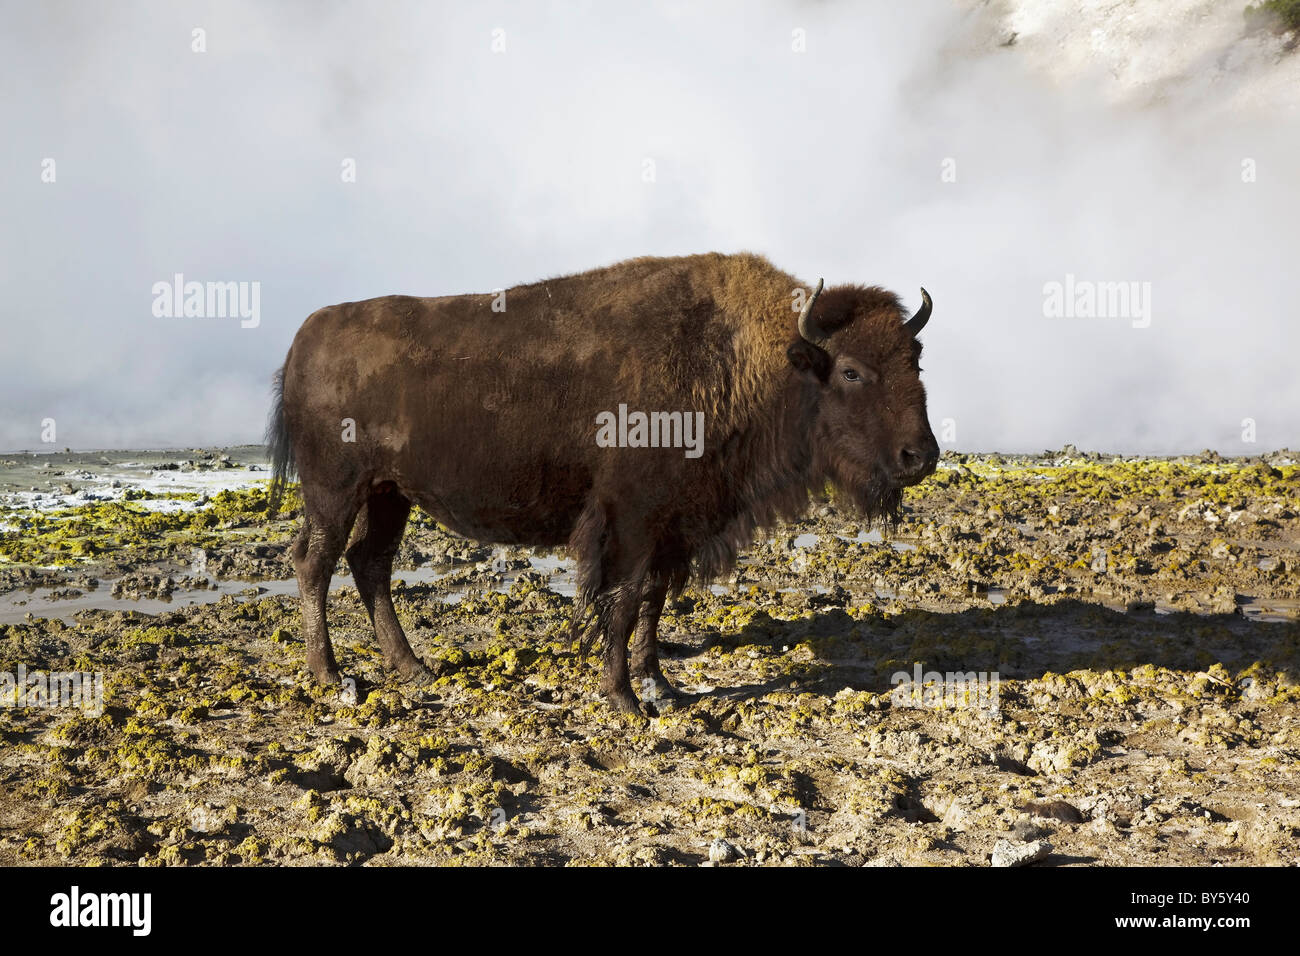 A female American Bison coming across the mud volcano steam vents on the Cooking hillside in central Yellowstone - Stock Image